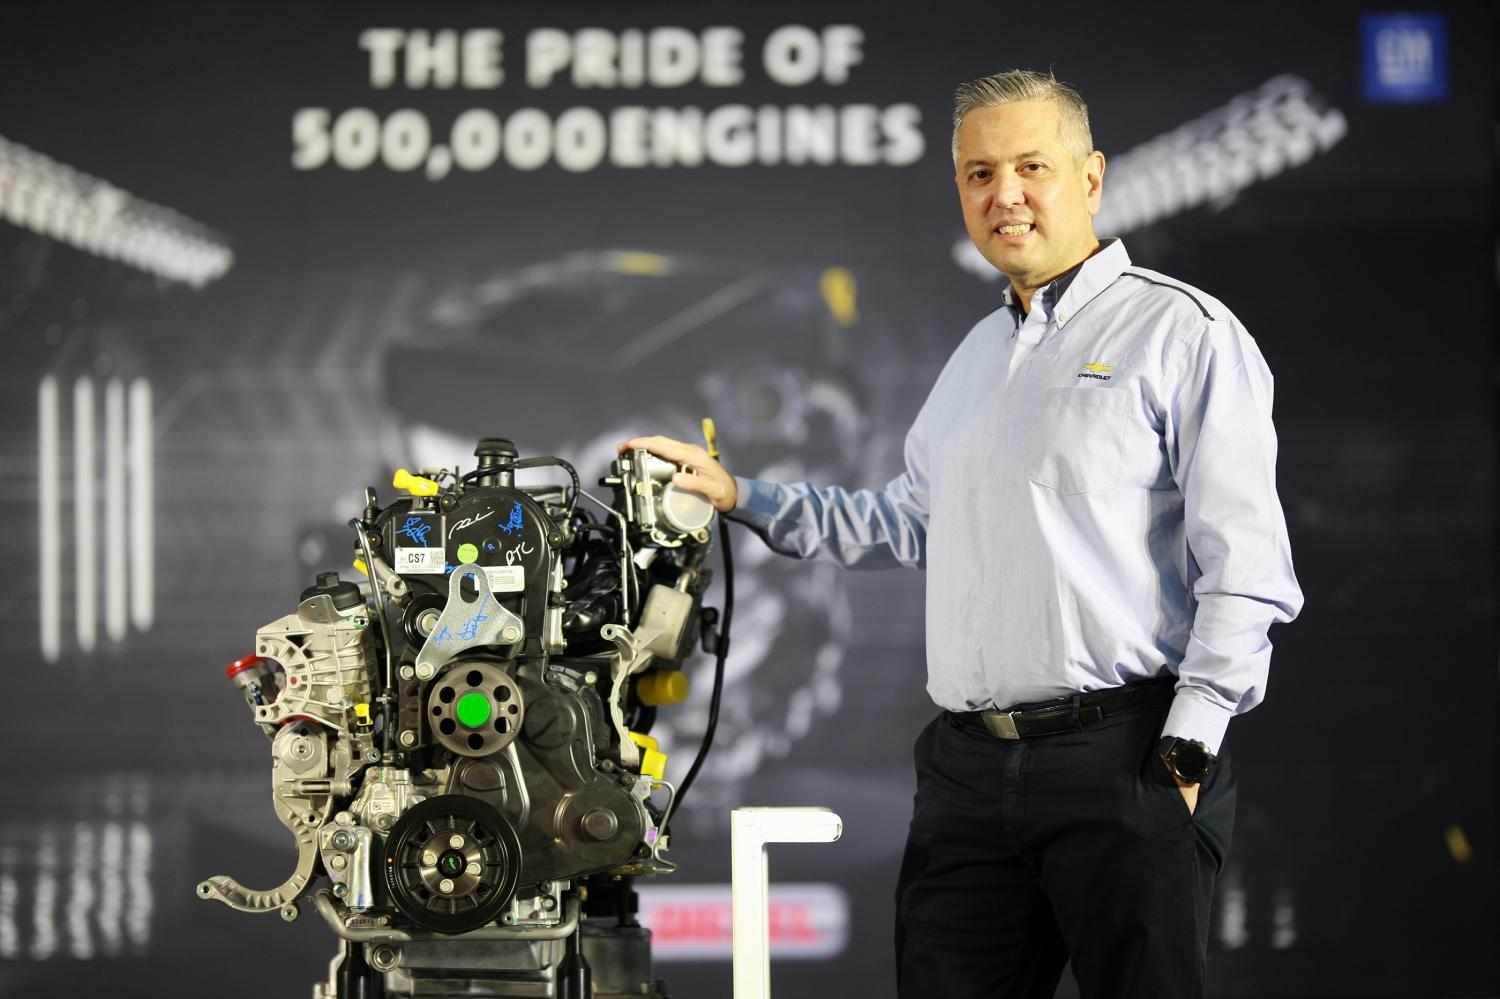 Mr Villarreal with the four-cylinder Duramax turbo-diesel engine. GM has made its 500,000th such engine at its Rayong plant.